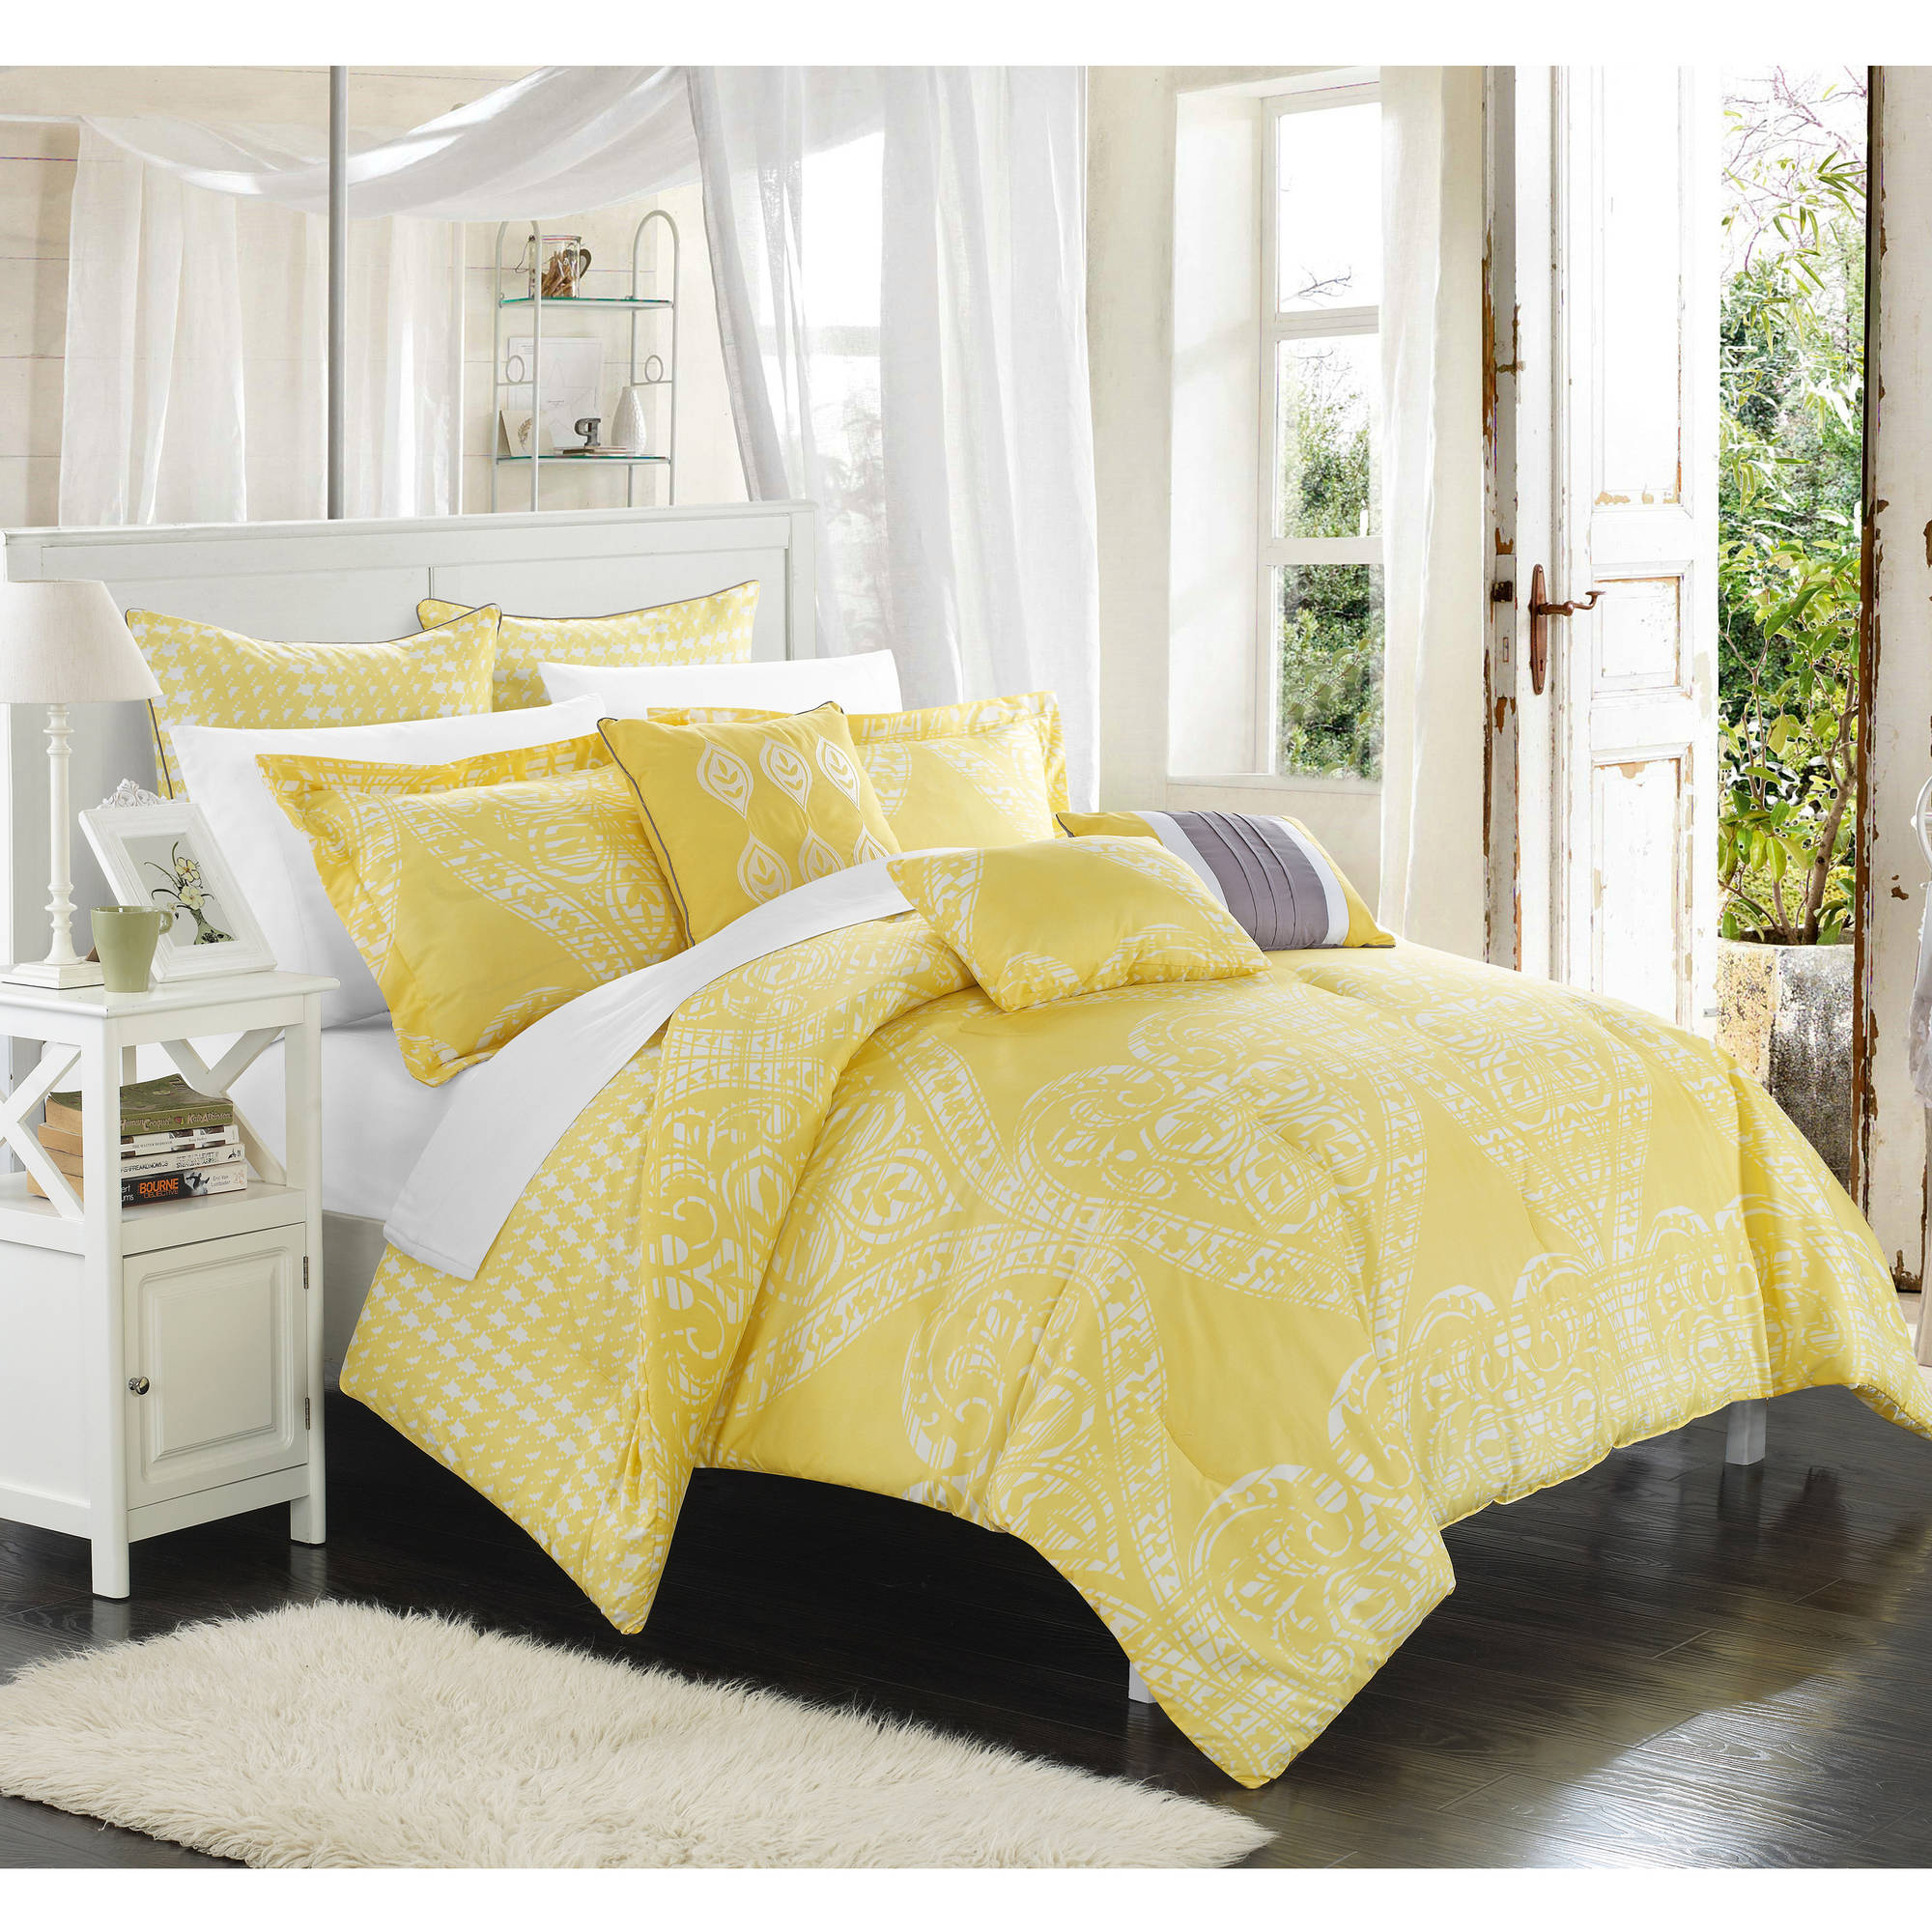 striped sets set oversized ivory comforter bedding solid queen save looks reversible dsc emboss in overfilled and